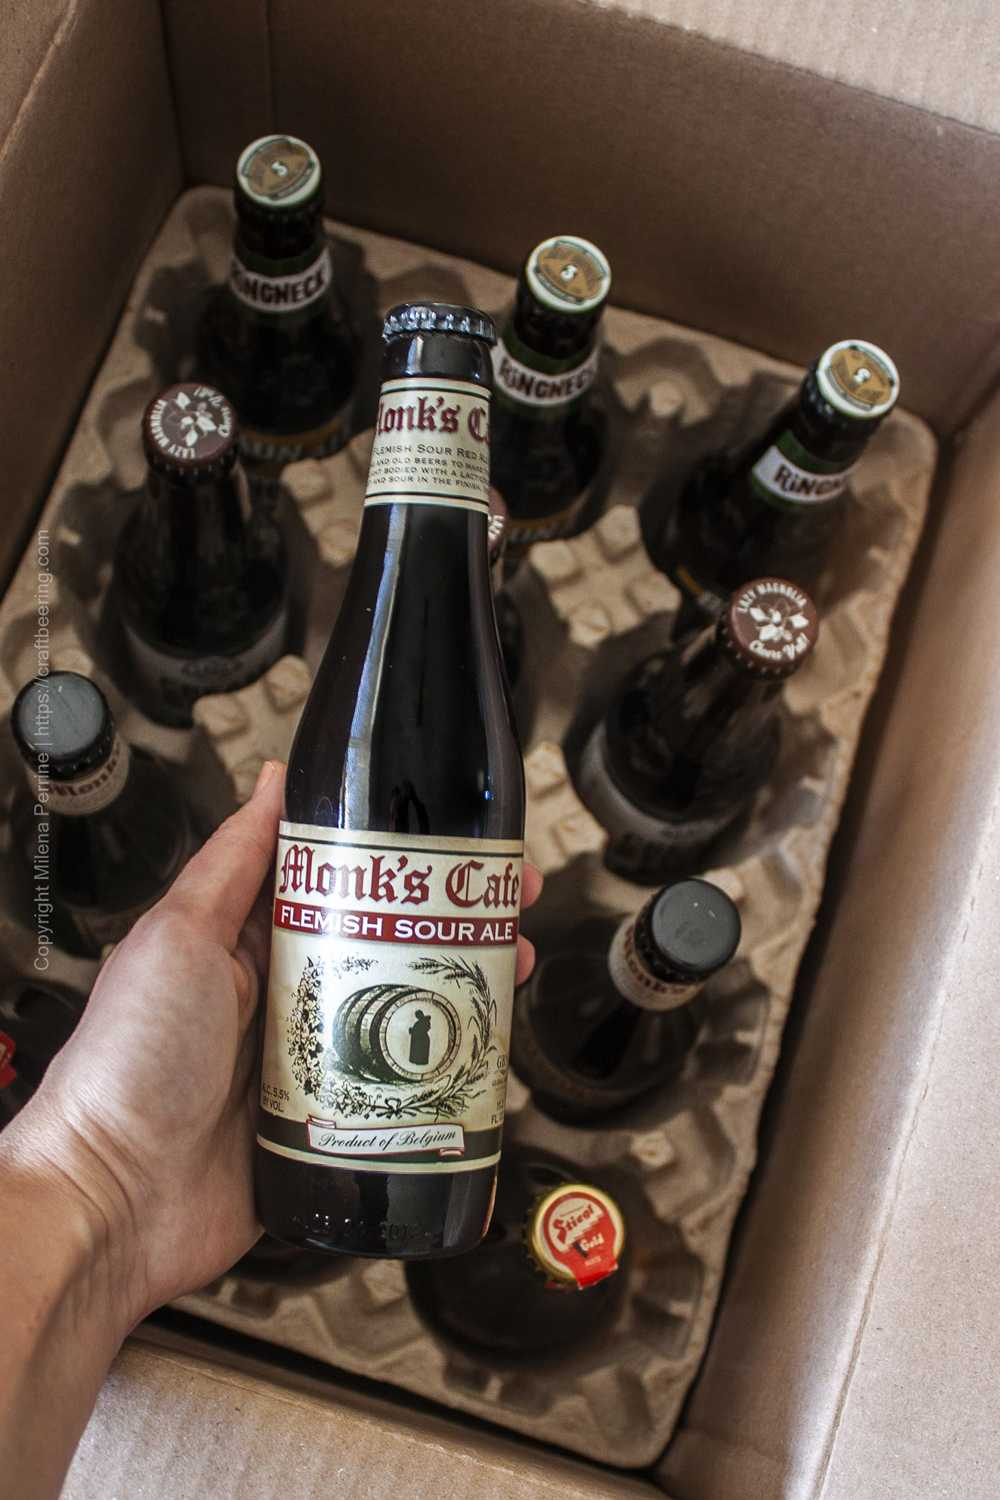 International beer club subscription - micro-brews from around the world with available US inclusions option.